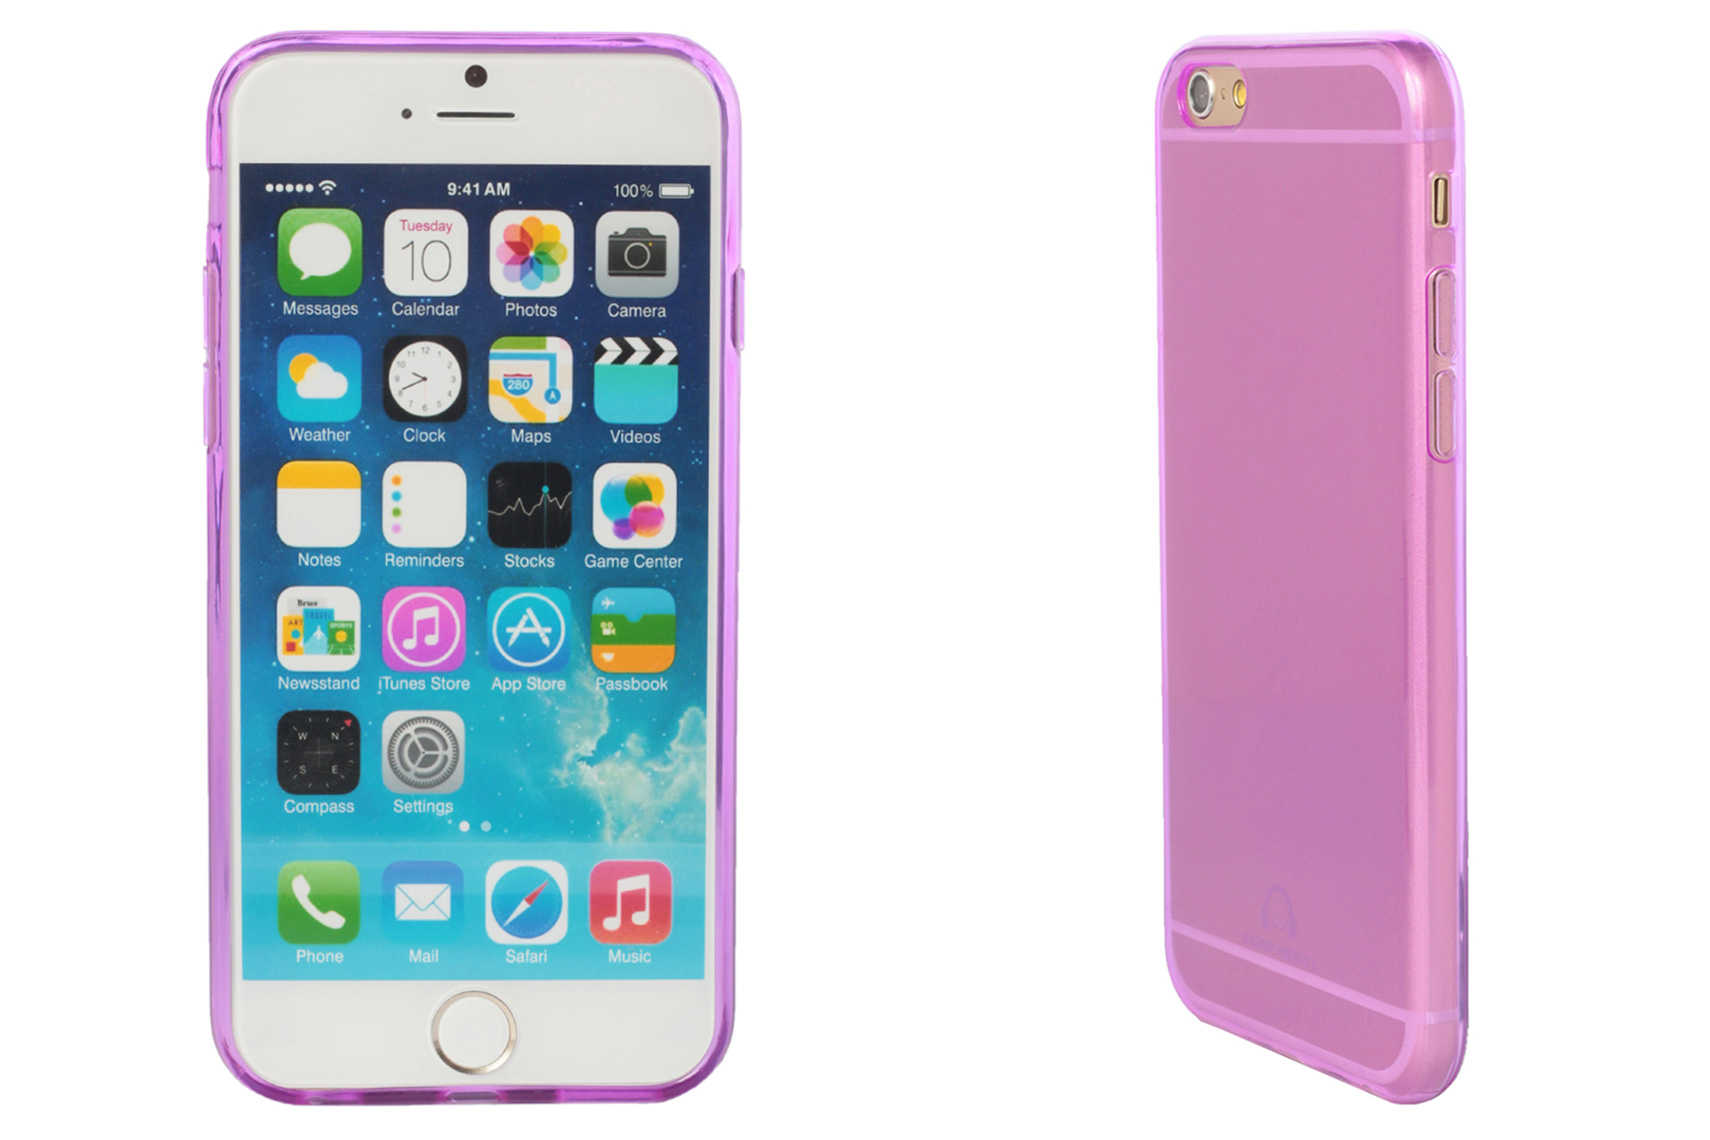 iPhone 6 Purple Case Front and Side Product Views